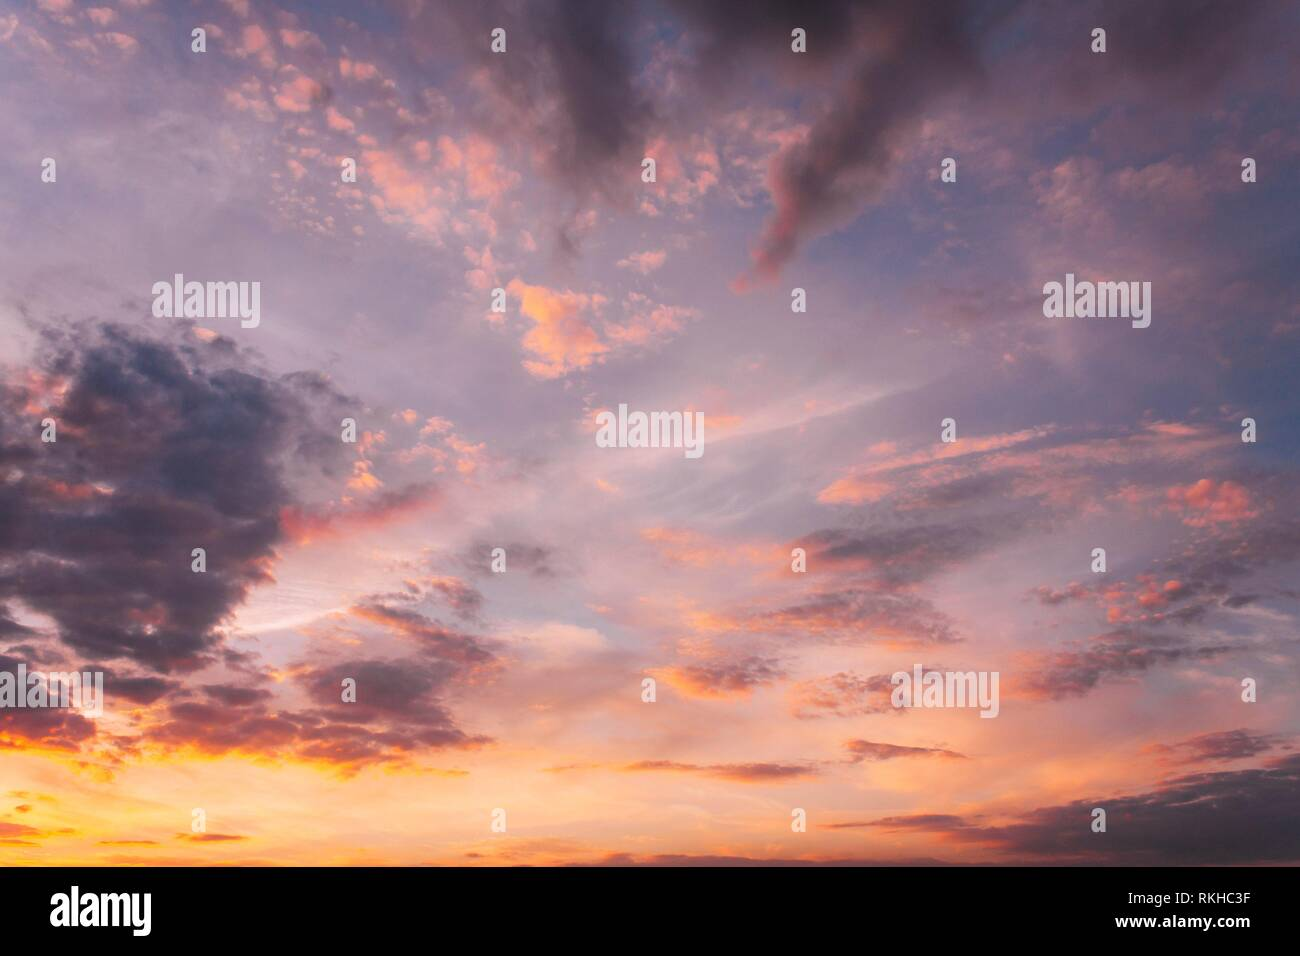 Sunset Sunrise Sky Background. Natural Bright Dramatic Sky In Sunset Dawn Sunrise. Yellow, Magenta, Purple And Pink Colors. - Stock Image